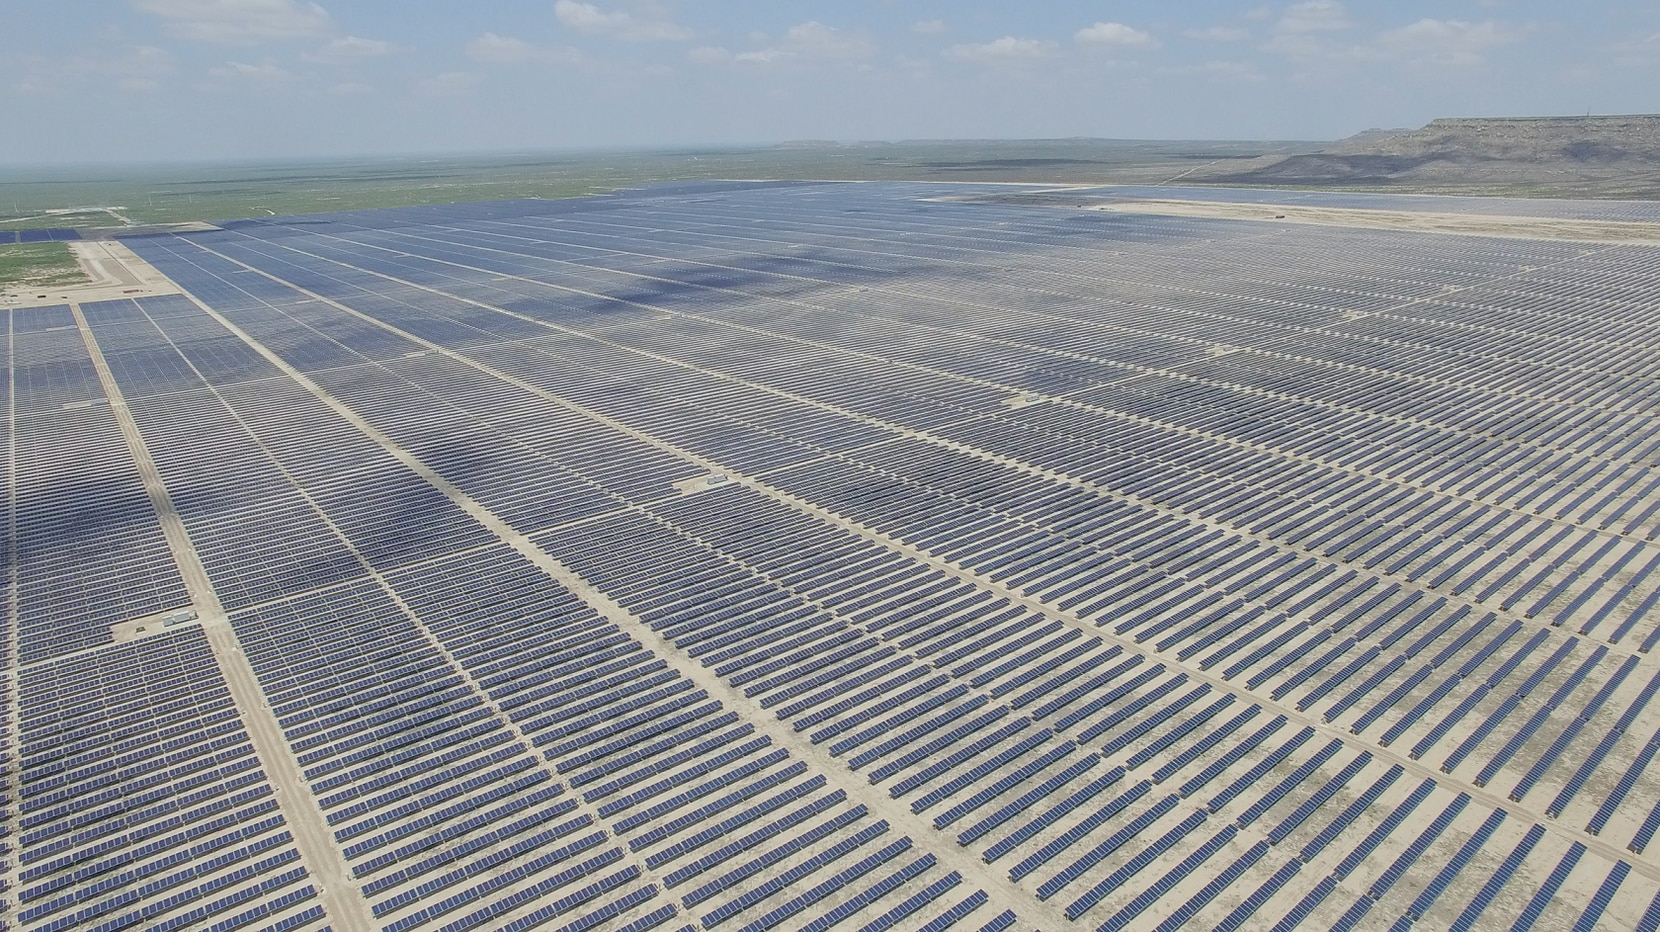 Luminant's Upton 2 solar plant near the West Texas town of McCamey in Upton County. The company received a $1 million state grant in October 2018 to help build a 10 megawatt battery at Upton 2. That will help boost production at the solar plant.